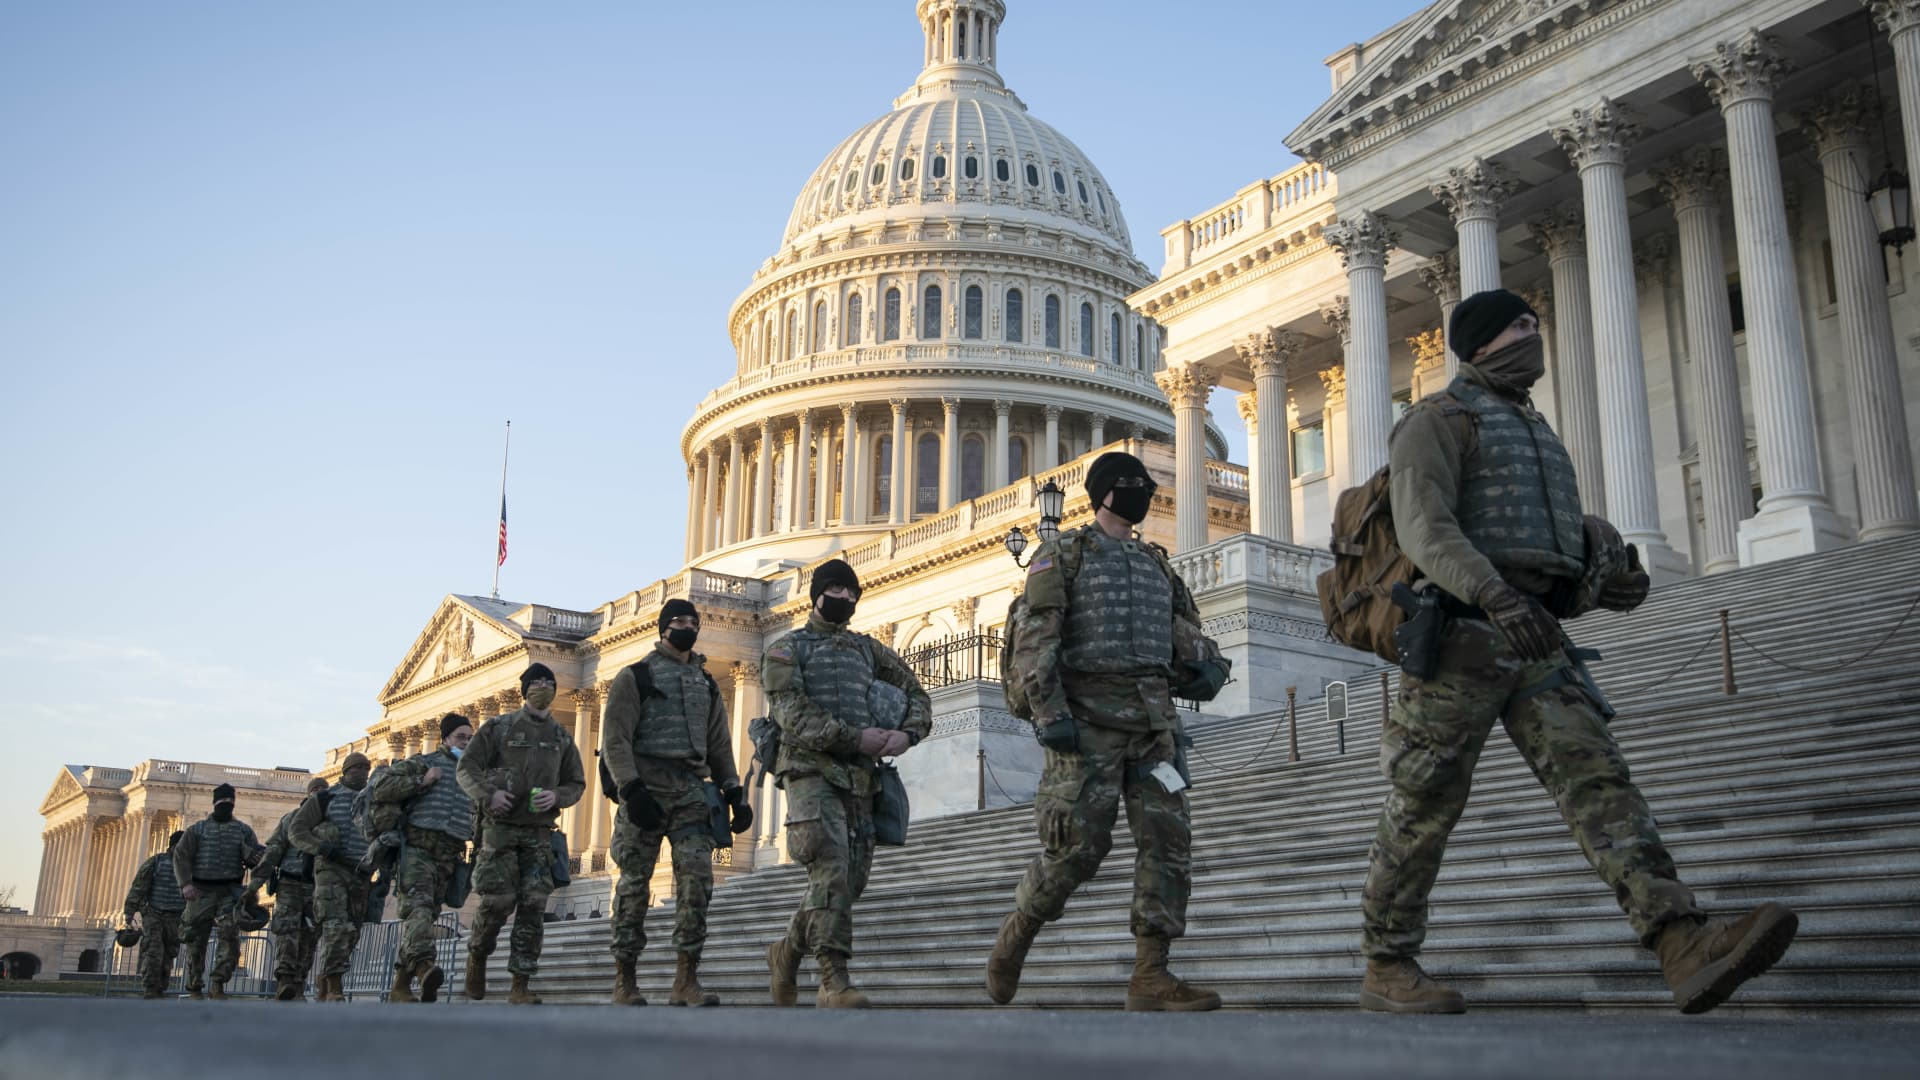 Members of the National Guard walk outside of the U.S. Capitol building in Washington, D.C., U.S., on Wednesday, Jan. 13, 2021.